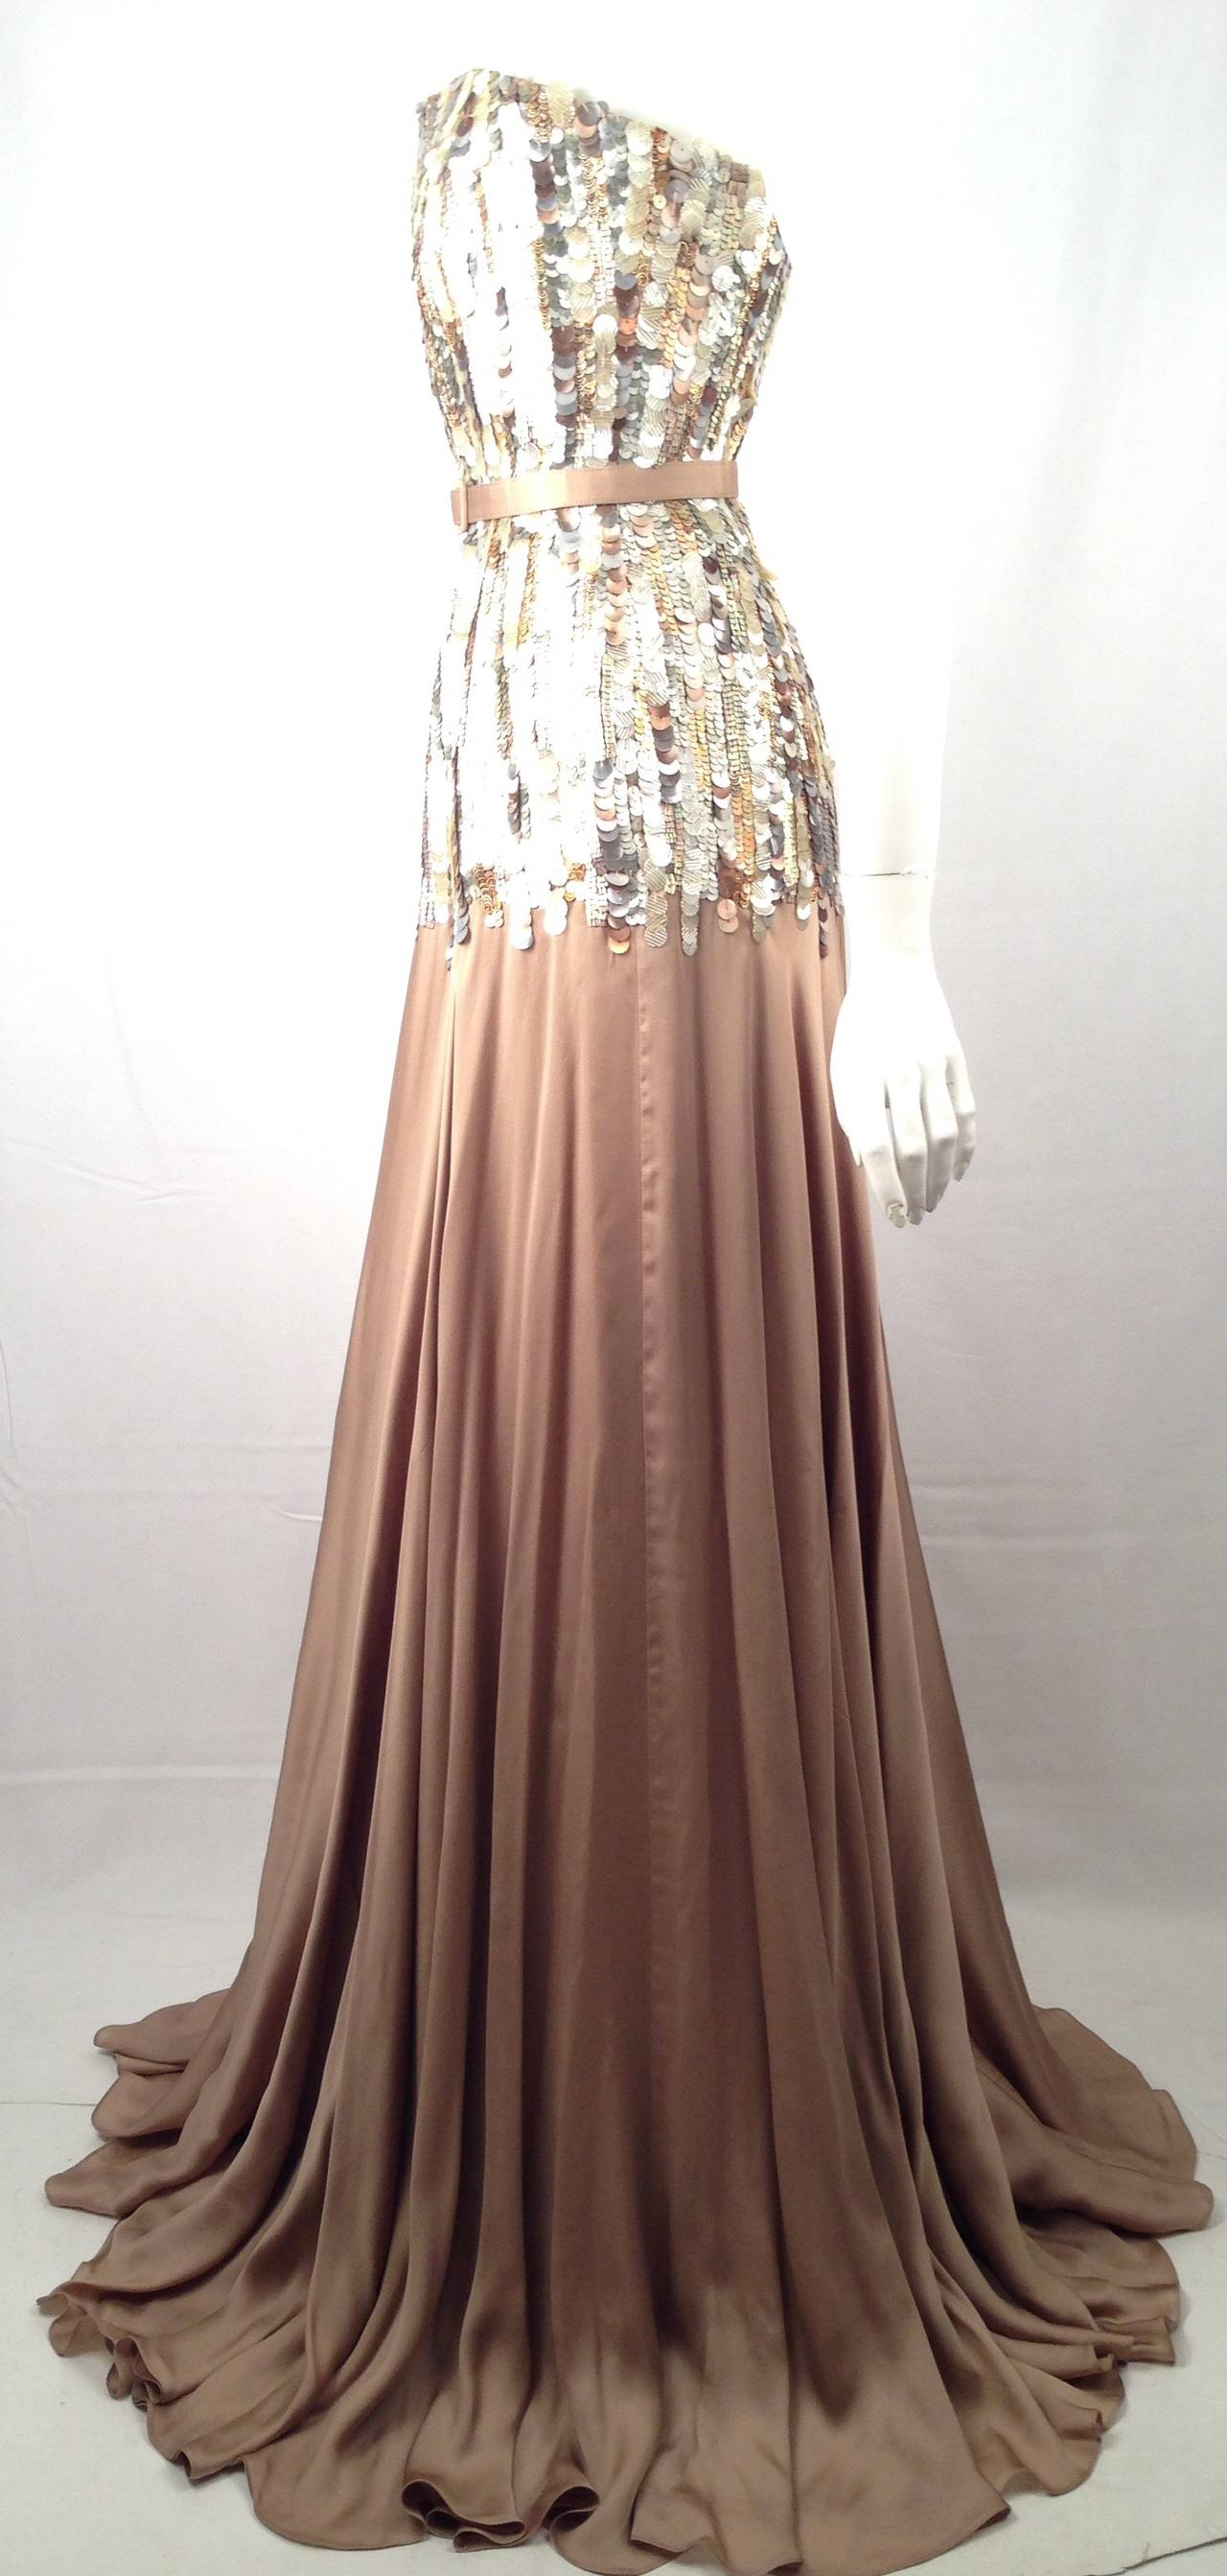 Brand New Strapless Farah Angsana Silk Gown With Sequin and Paillette Bodice 4